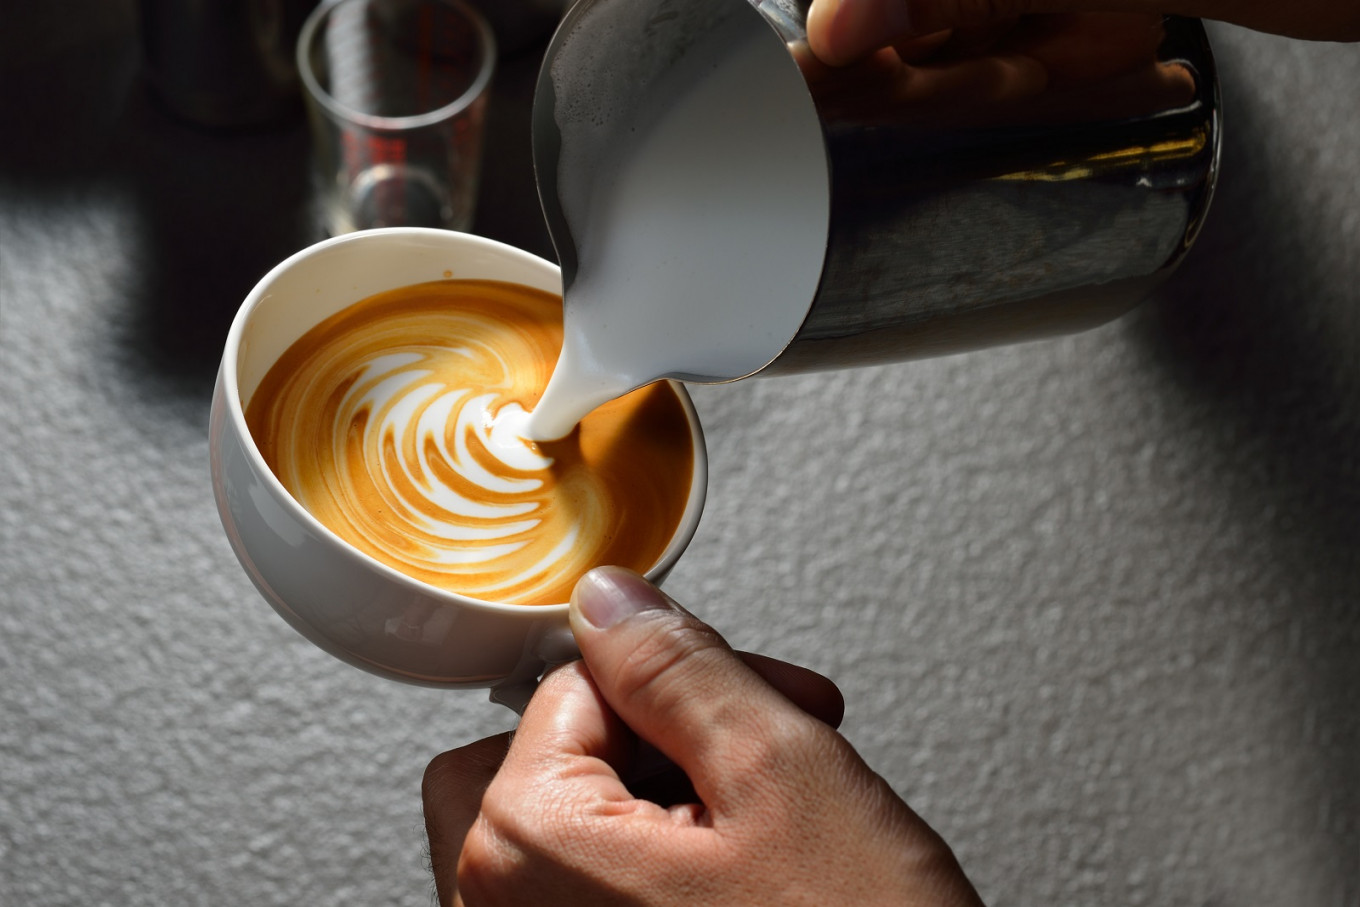 Latte factor and other small expenses that could lead your finances astray